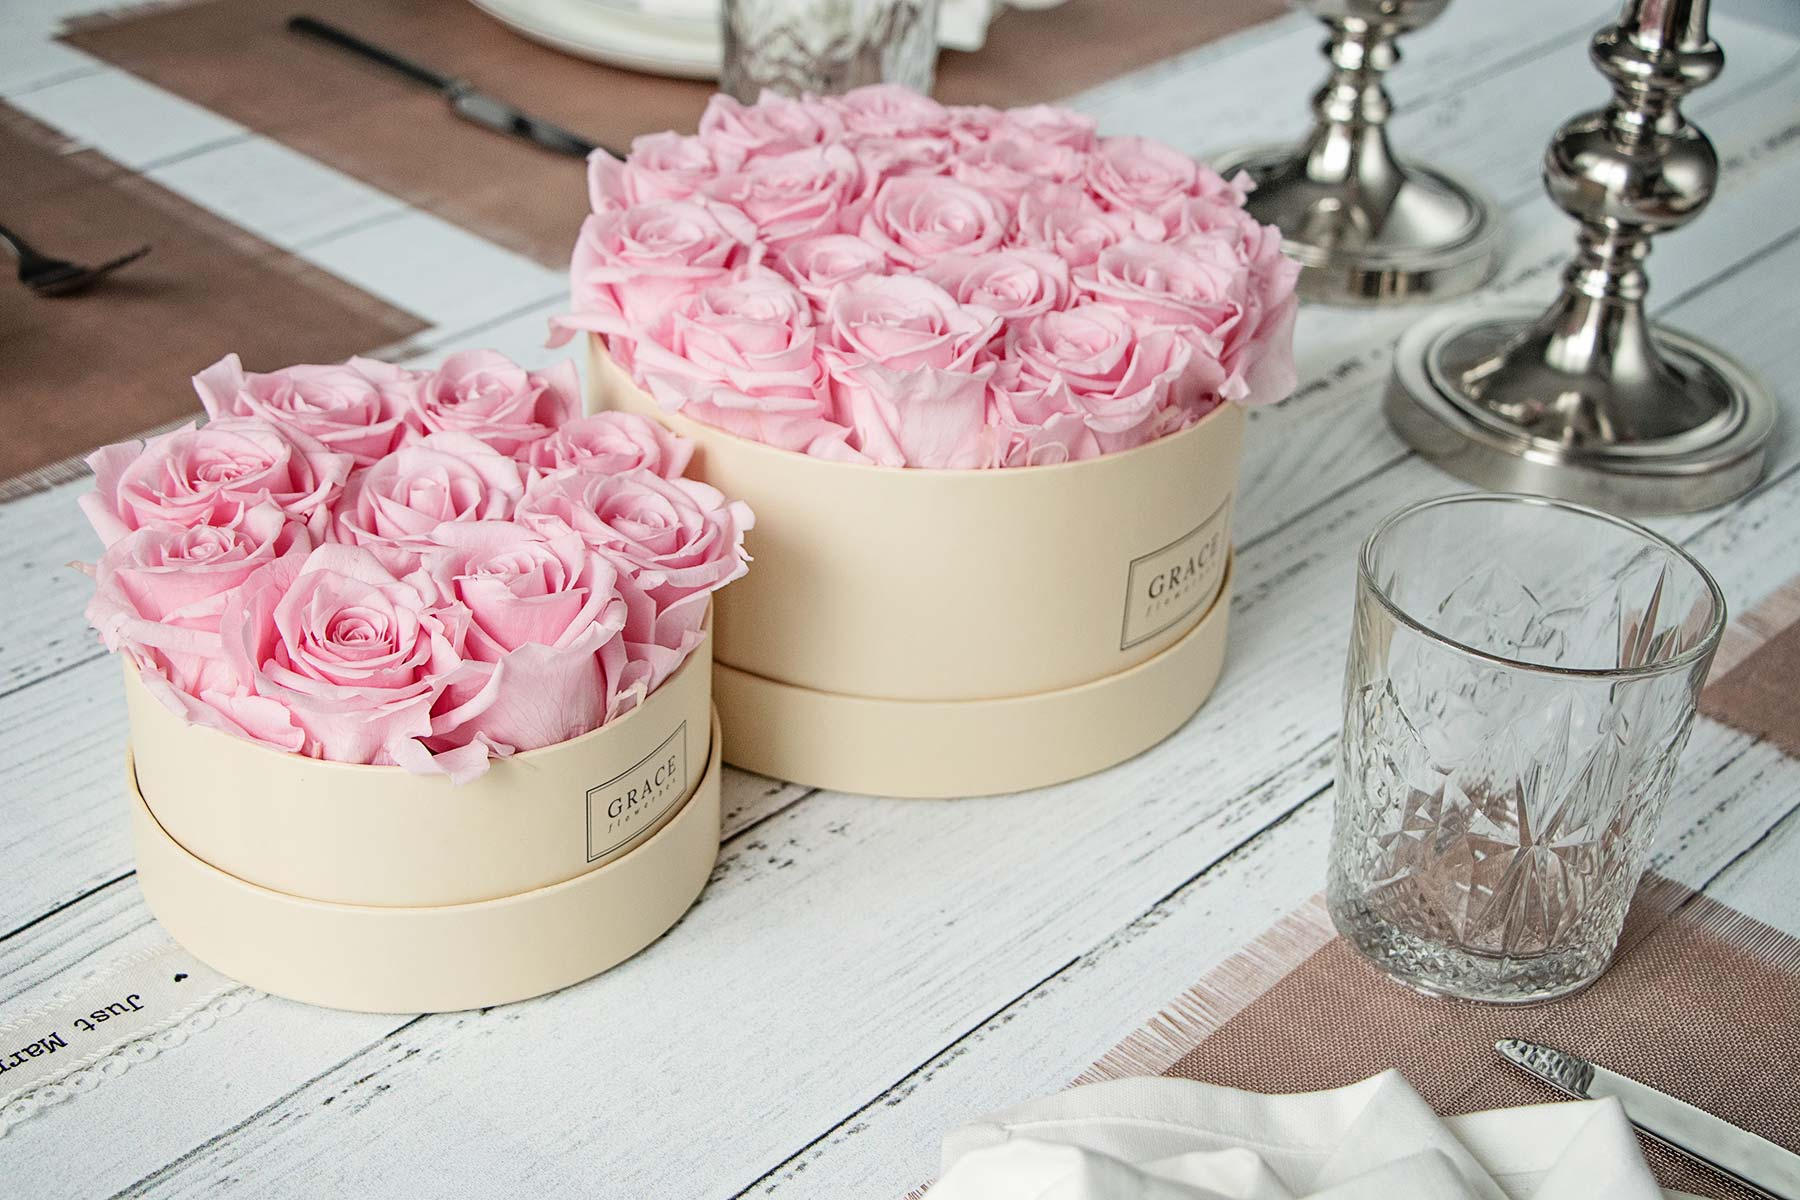 grace flowerbox table size kollektion f r die tischdeko bei der hochzeit. Black Bedroom Furniture Sets. Home Design Ideas